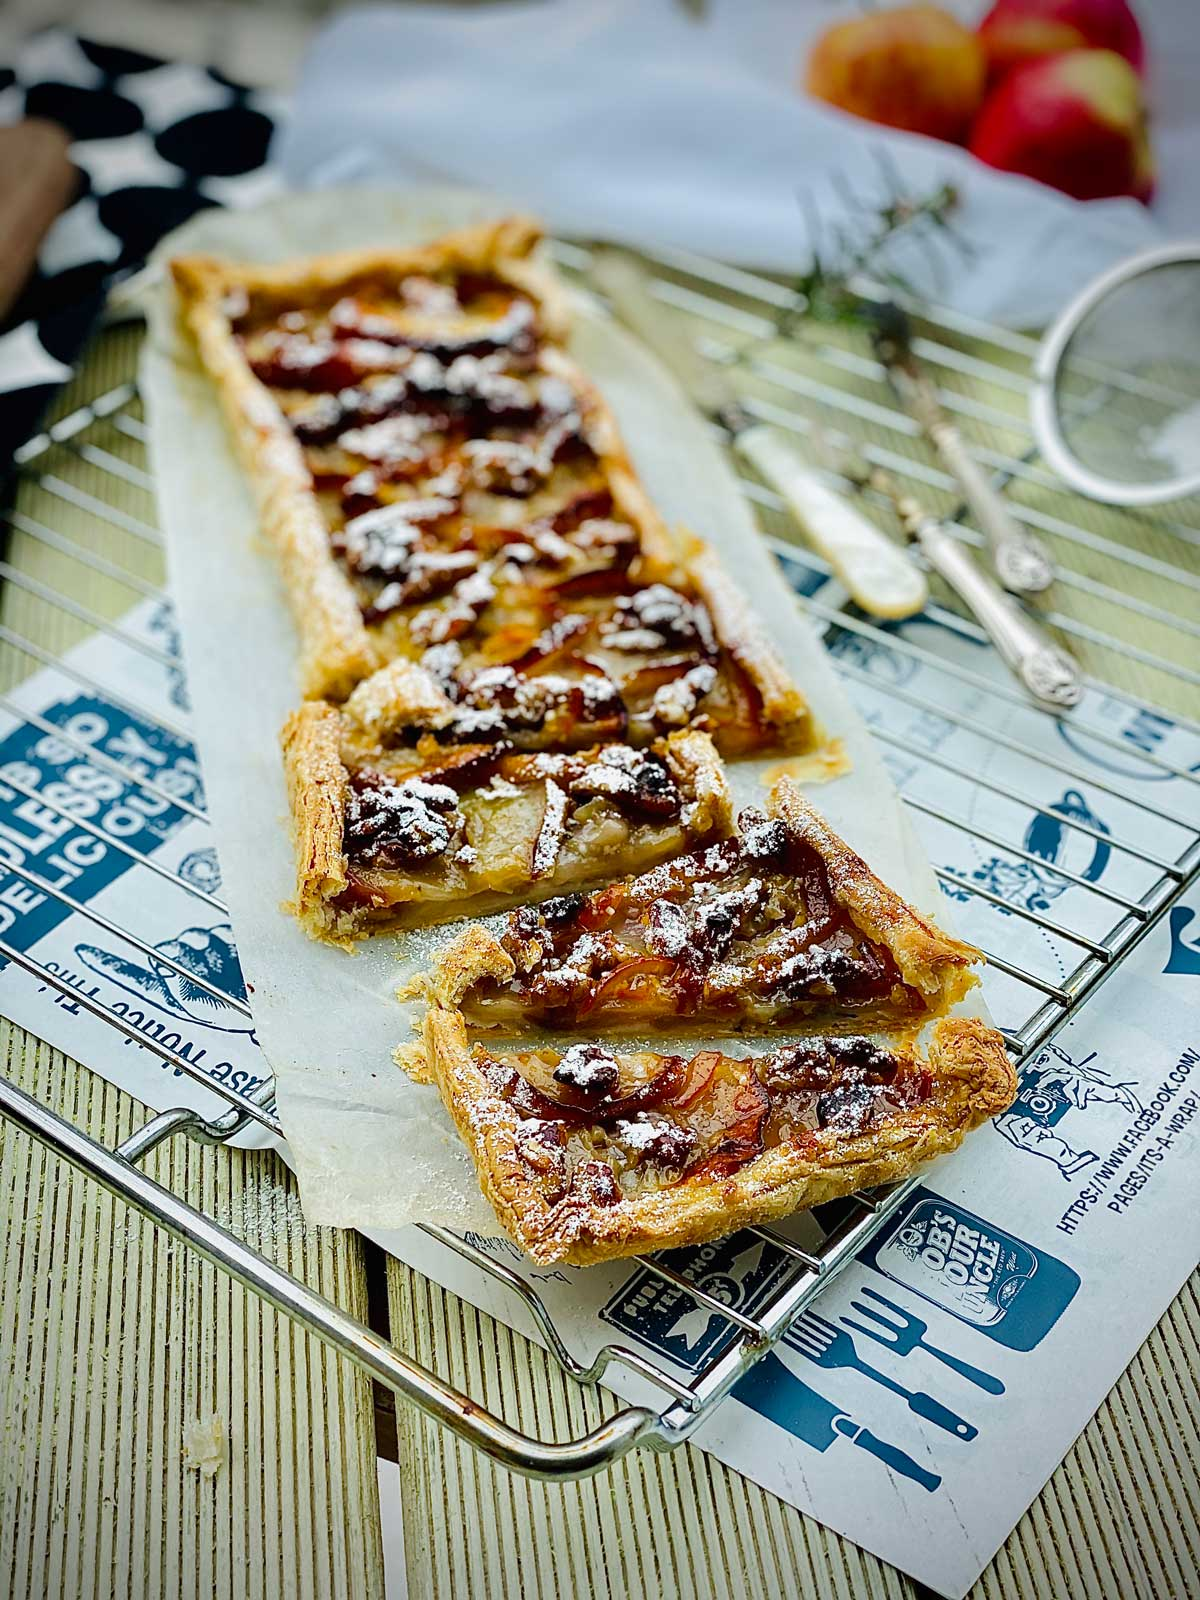 Apple and orange marmalade tart